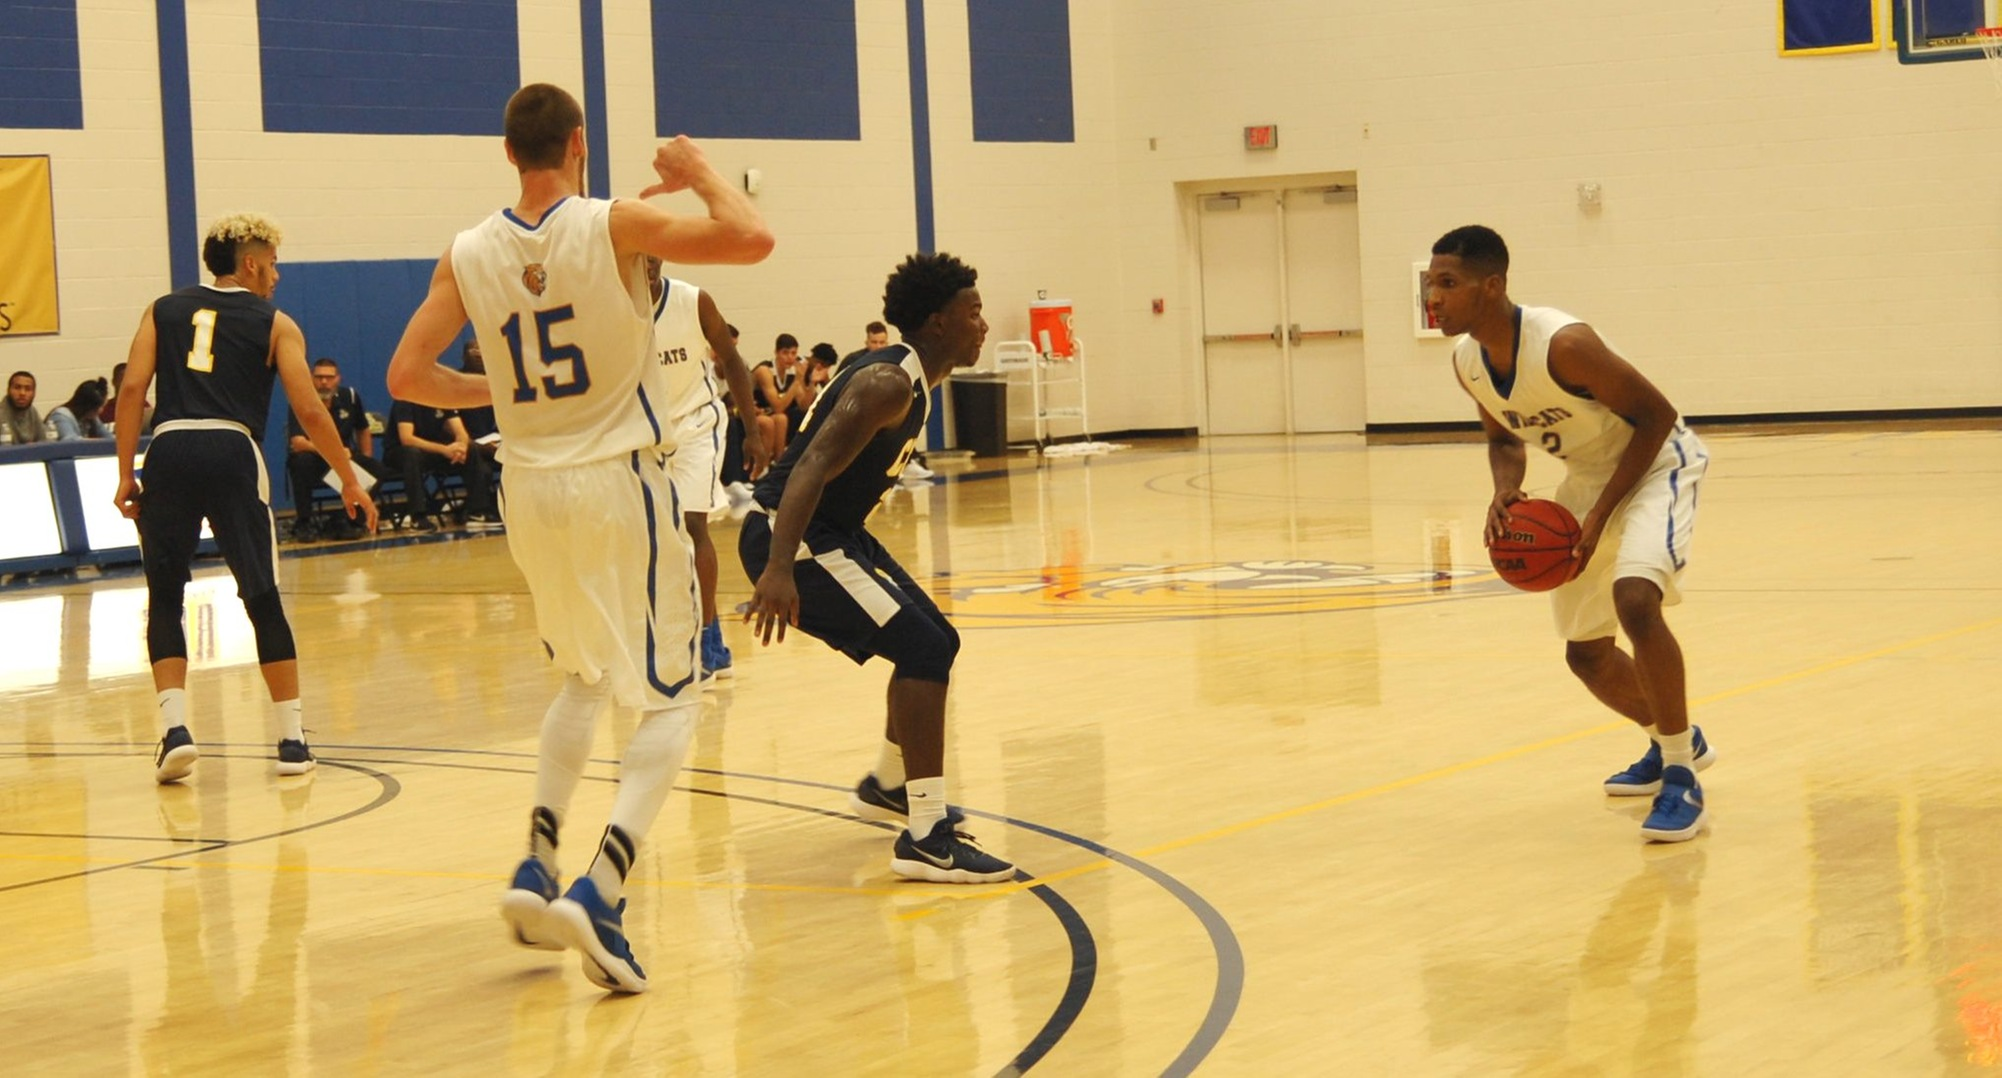 Poole Scores 17 for JWU in 90-54 Loss at High Point